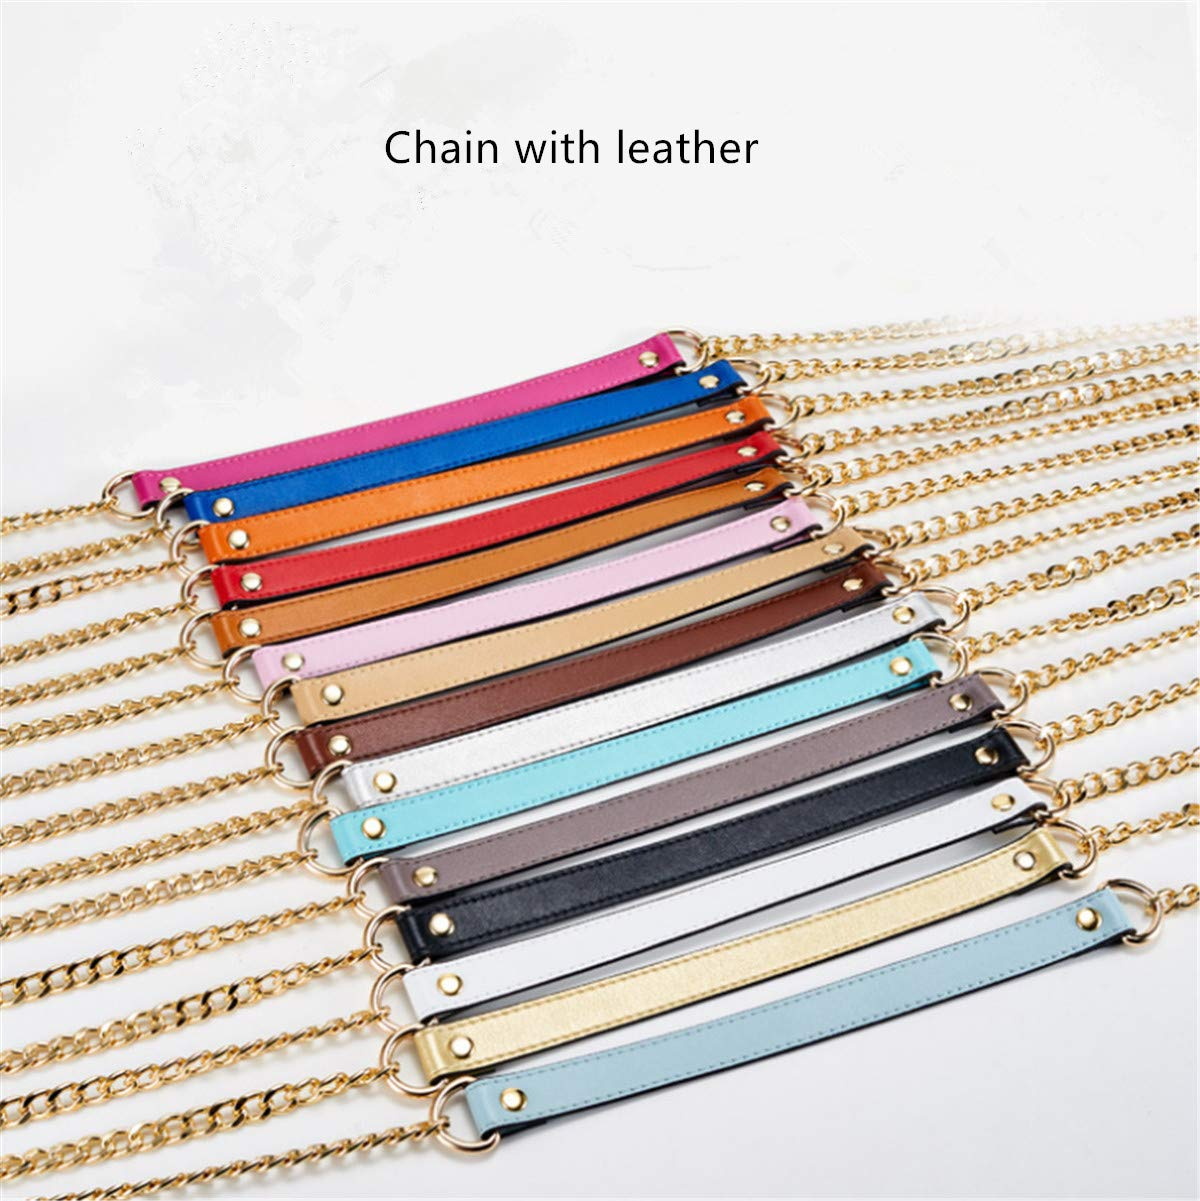 ESUPPORT Purse Straps Replacement Leather Metal Chain Unadjustable for Crossbody Handbags Shoulder Bag Wallet DIY 43.31 Inch Long Black